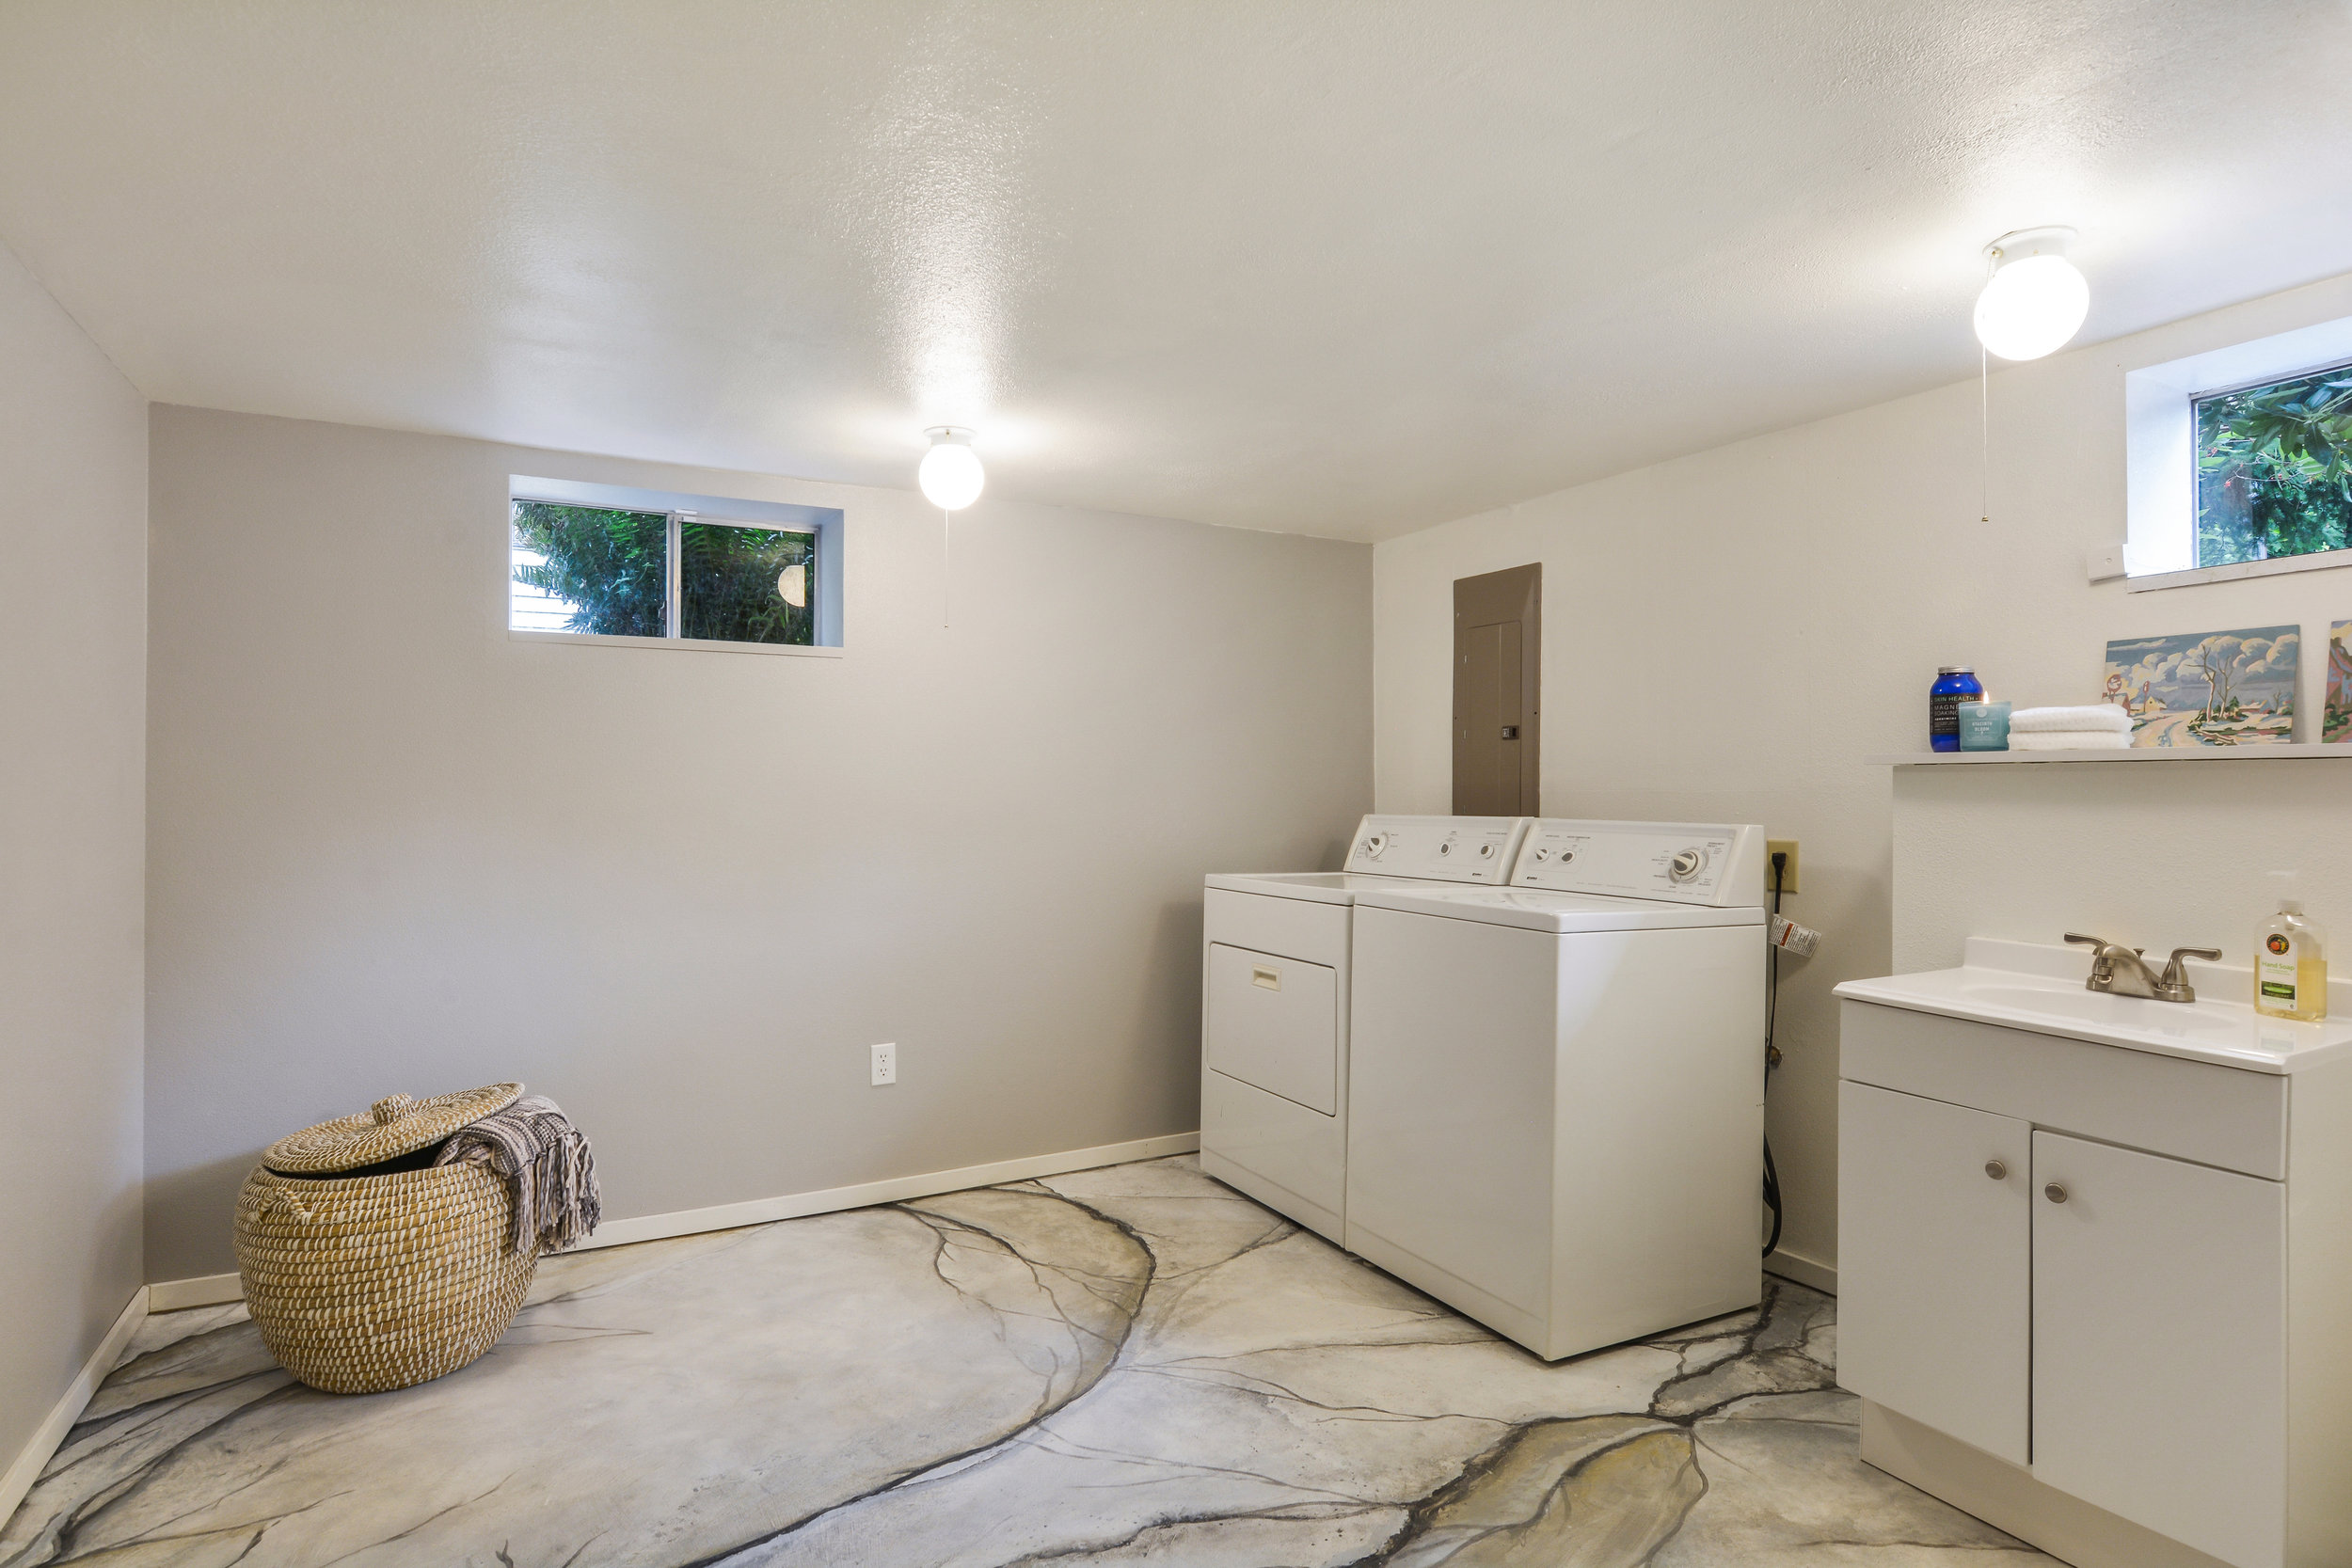 This laundry room, found at the base of the stairs is complete with a washer and dryer, lots of floor space, and a 3/4 bath.